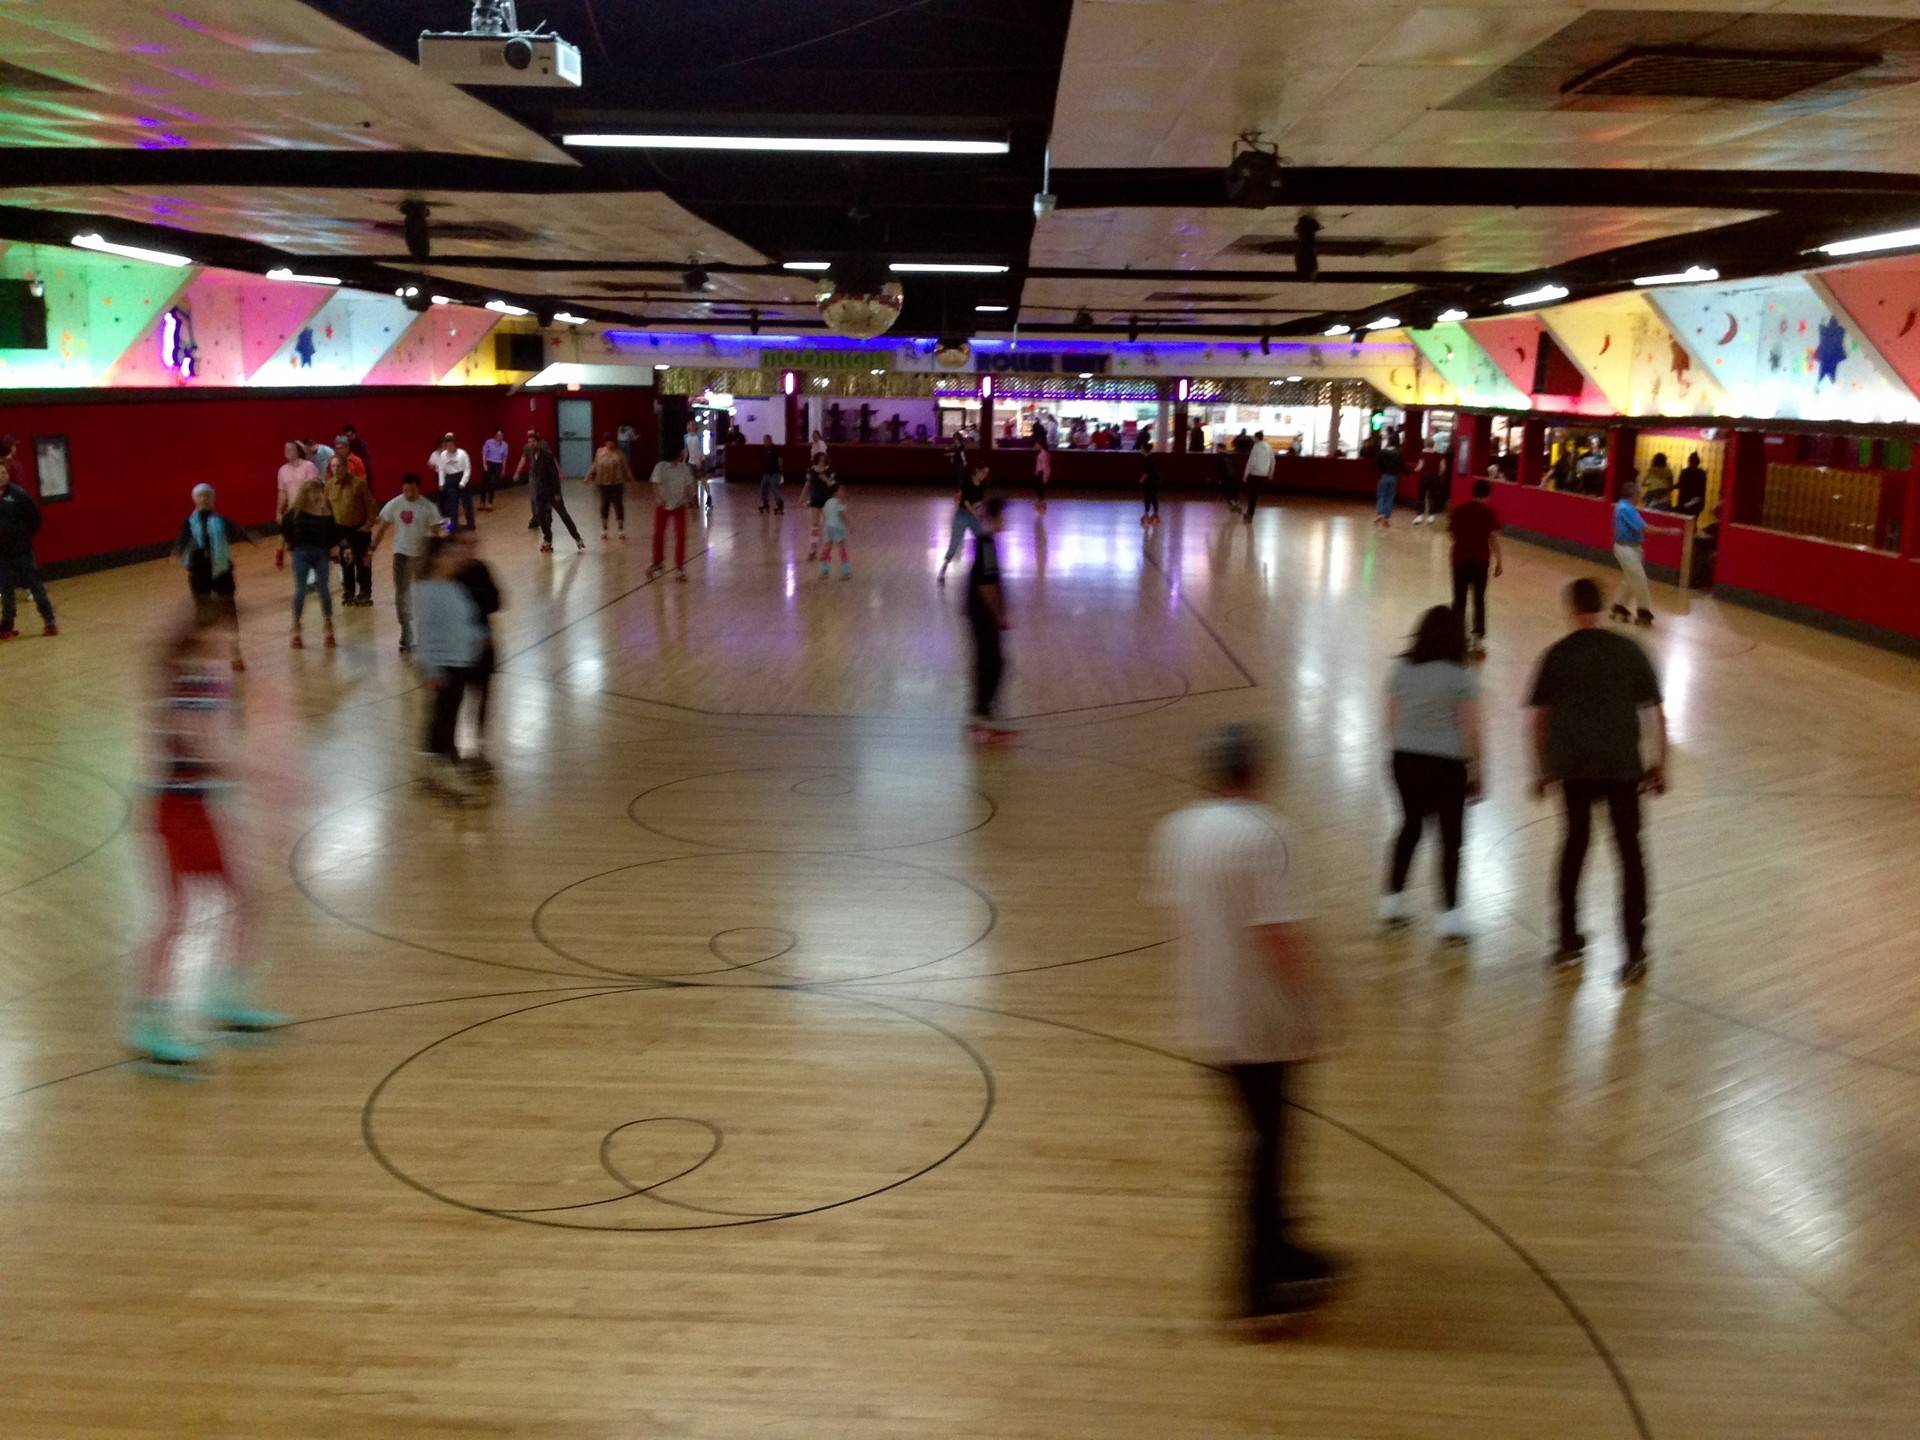 You Can Find California's Last Roller Rink Organist at the Moonlight